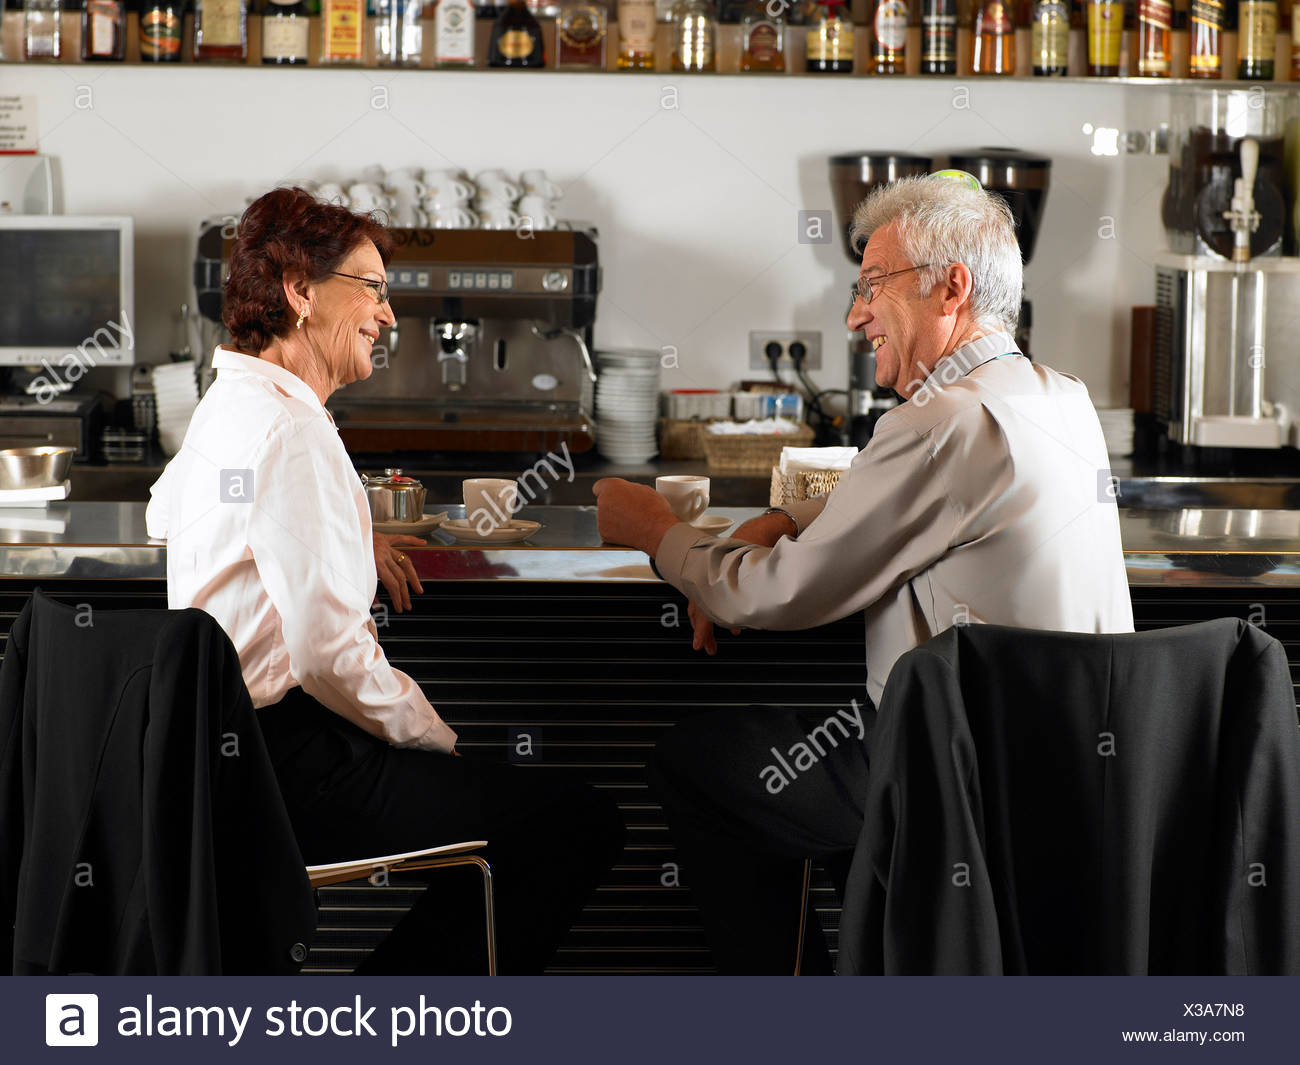 Businesspeople at a bar drinking coffee. - Stock Image